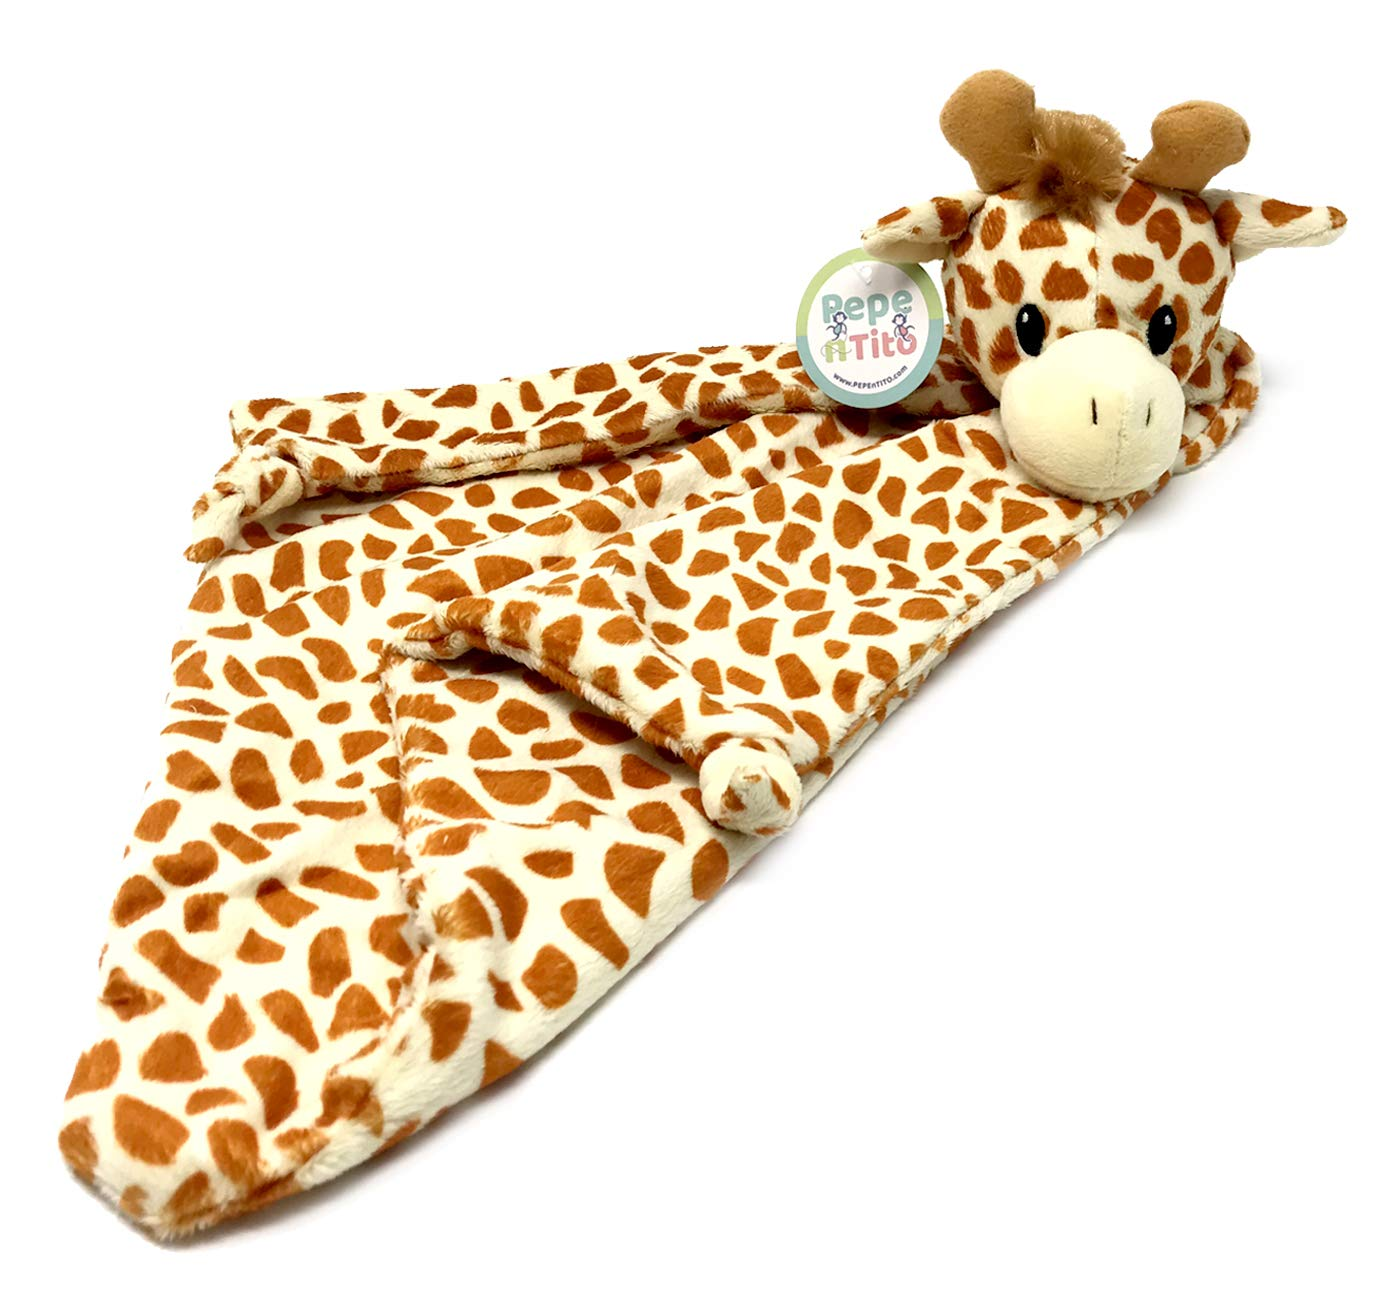 Baby Security Blanket by Pepe n Tito - 18'' Tall Soft Fleece Baby Blanket for Boys & Girls – Baby Soothing Blanket with Plush Stuffed Animal (Orange Giraffe)